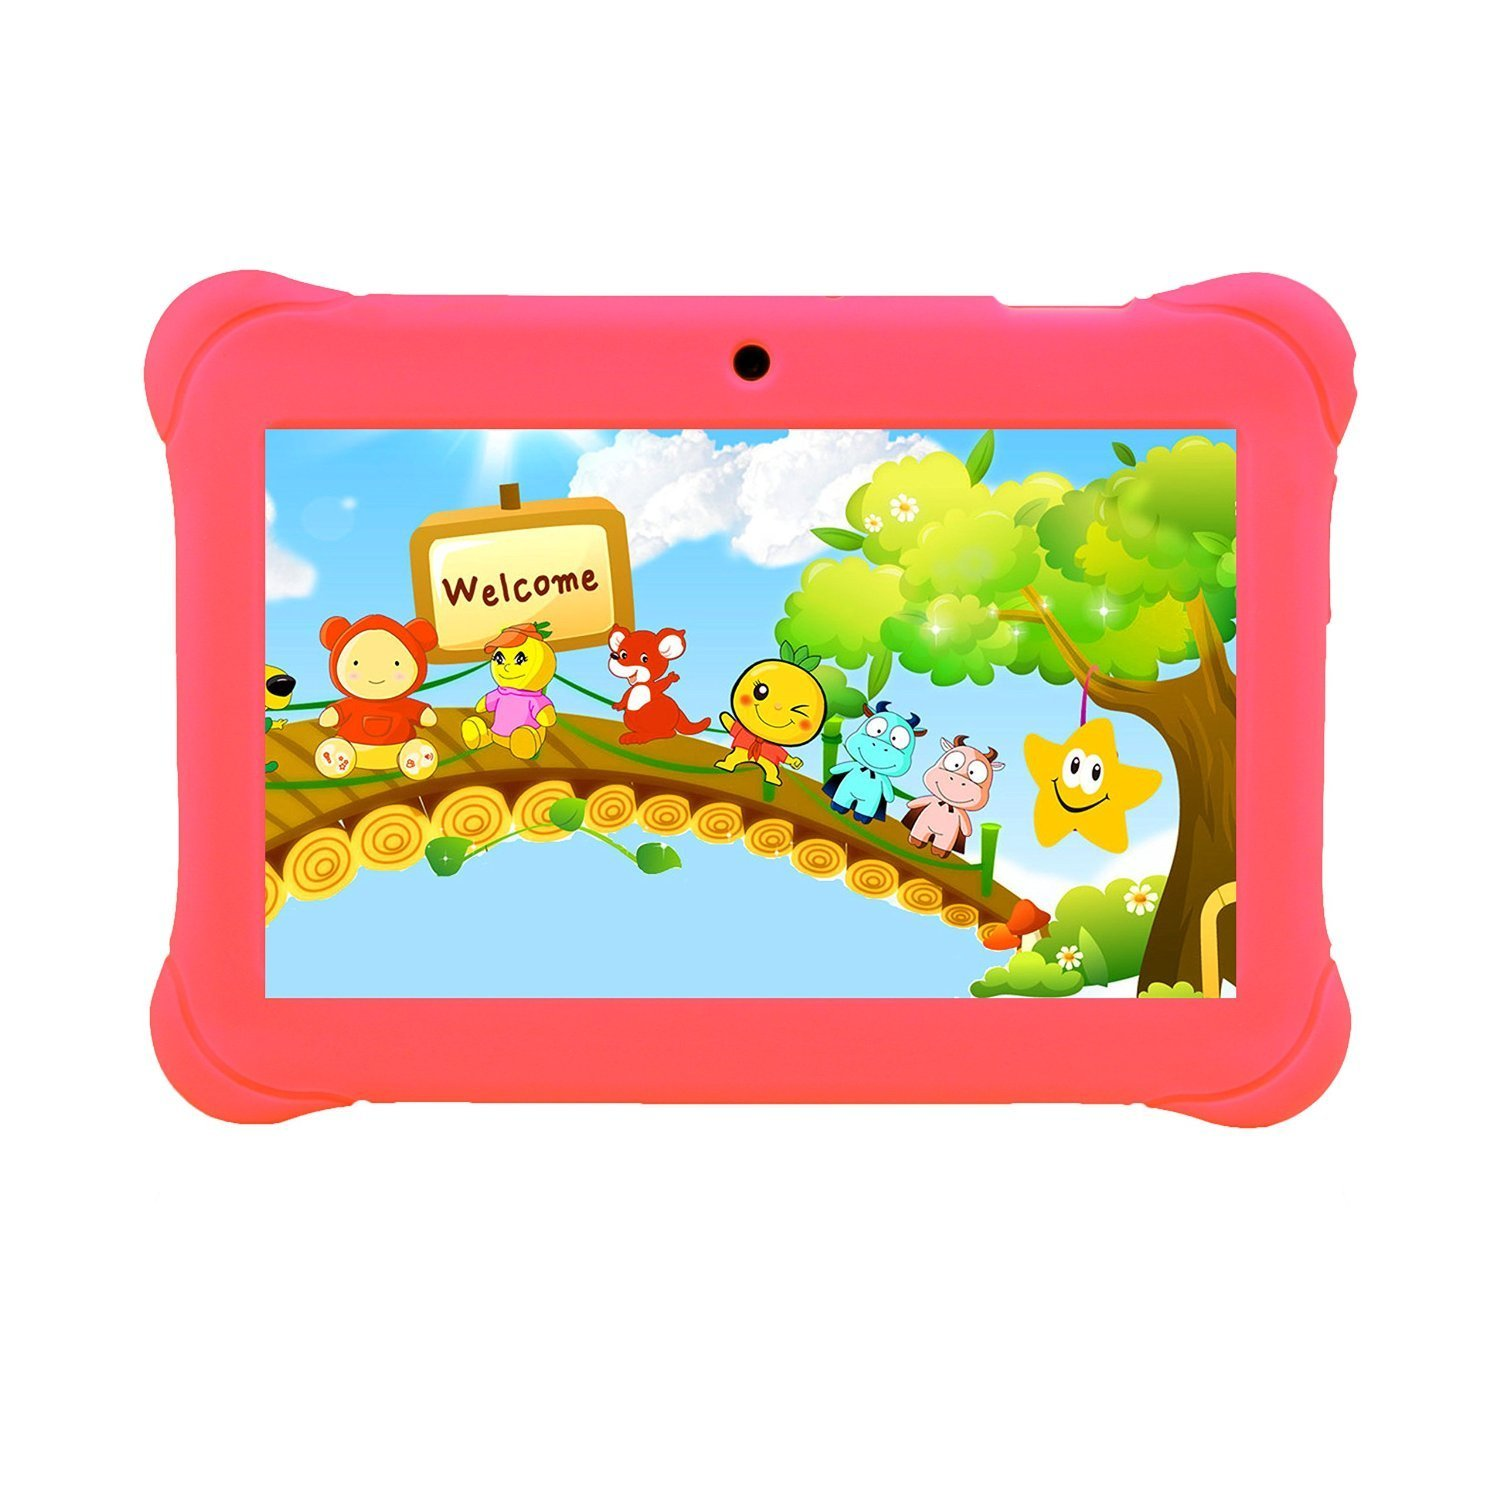 Tagital 7 T7K Quad Core Android Kids Tablet, with Wifi and Camera and Games, HD Kids Edition with Kid Mode Pre-Installed (Pink)